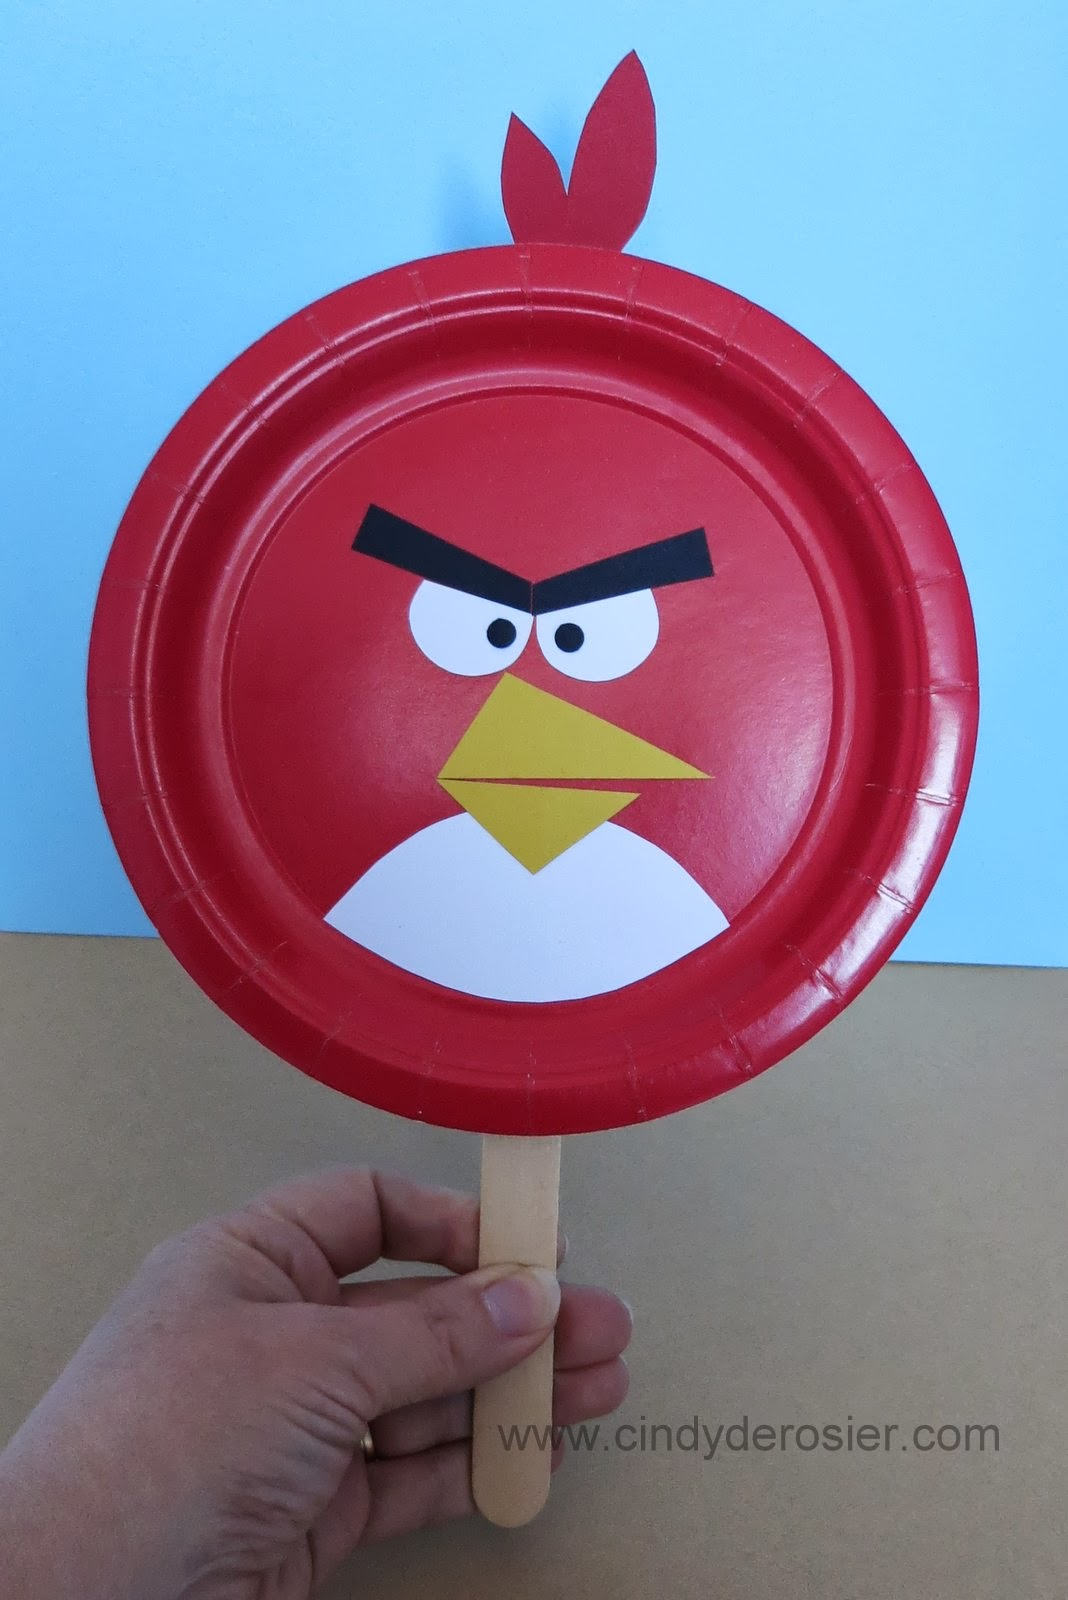 Angry Bird Paddles & Cindy deRosier: My Creative Life: Angry Bird Paddles